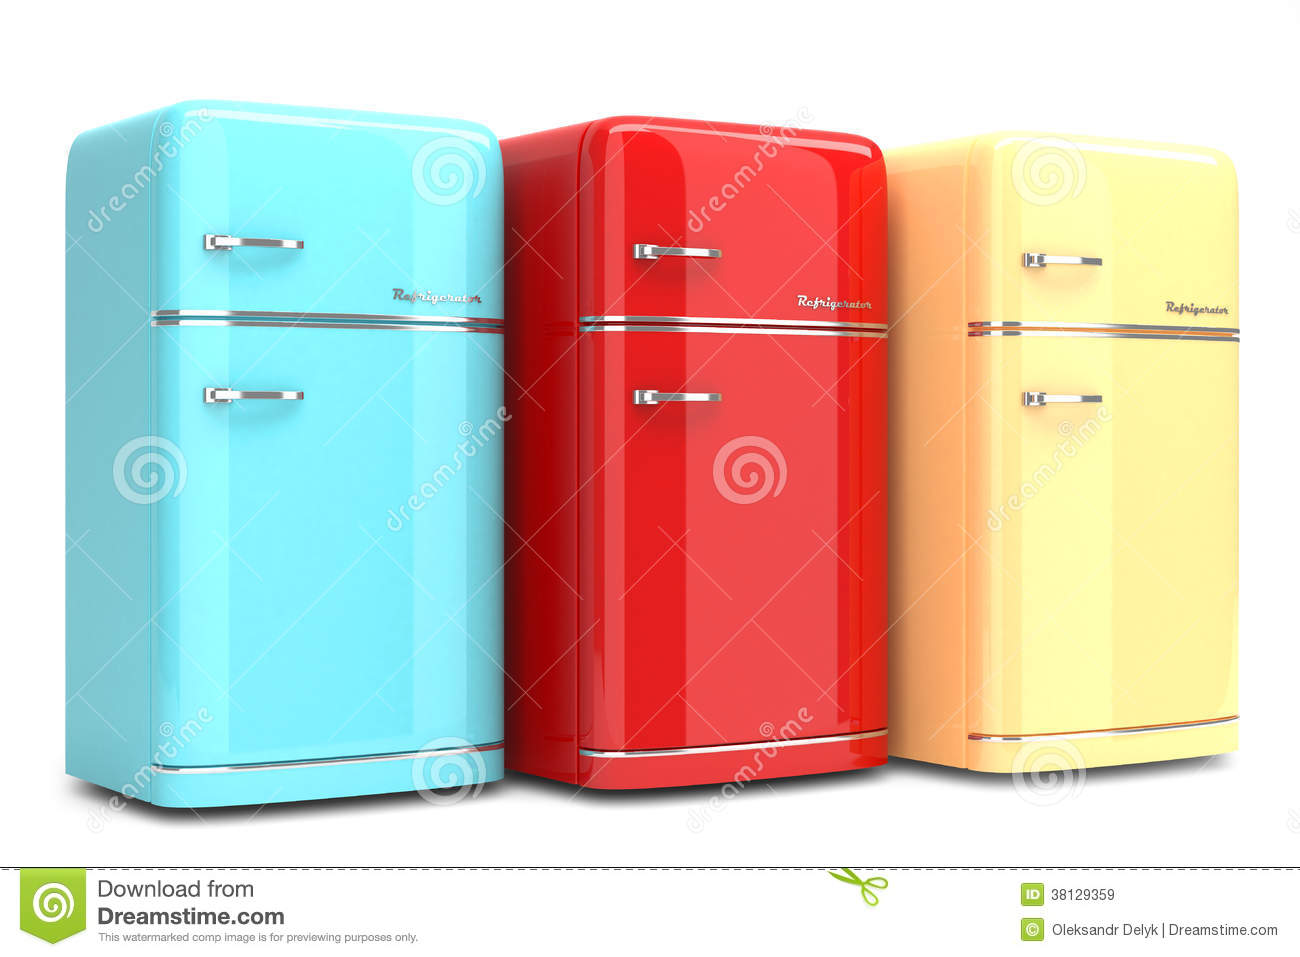 colored kitchen appliances how much does it cost to replace cabinets retro refrigerators royalty free stock images - image ...